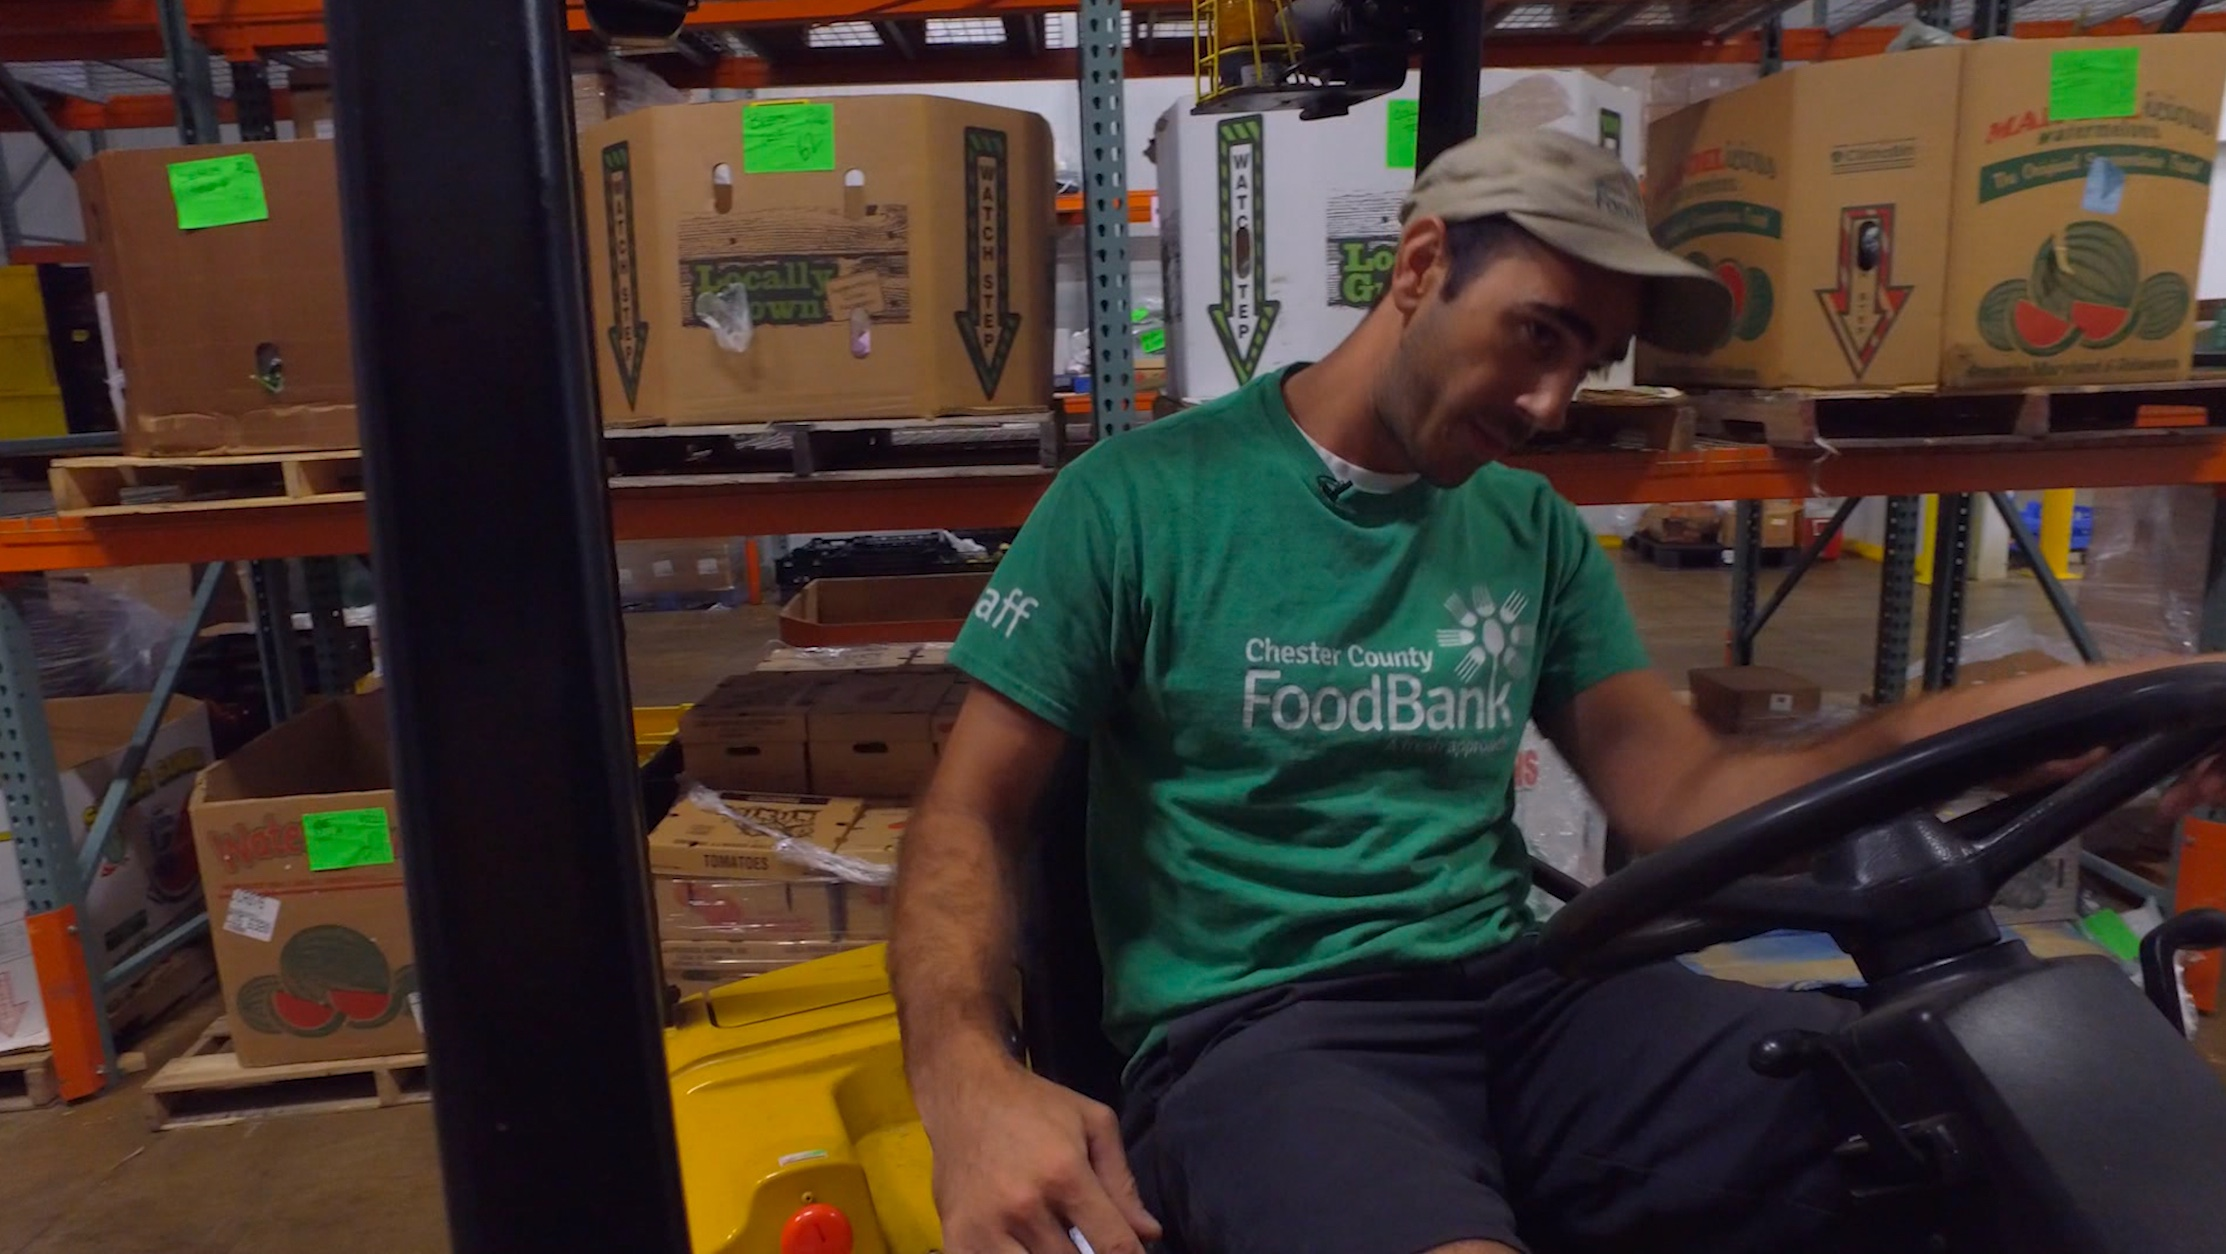 Chester county food bank worker on forklift